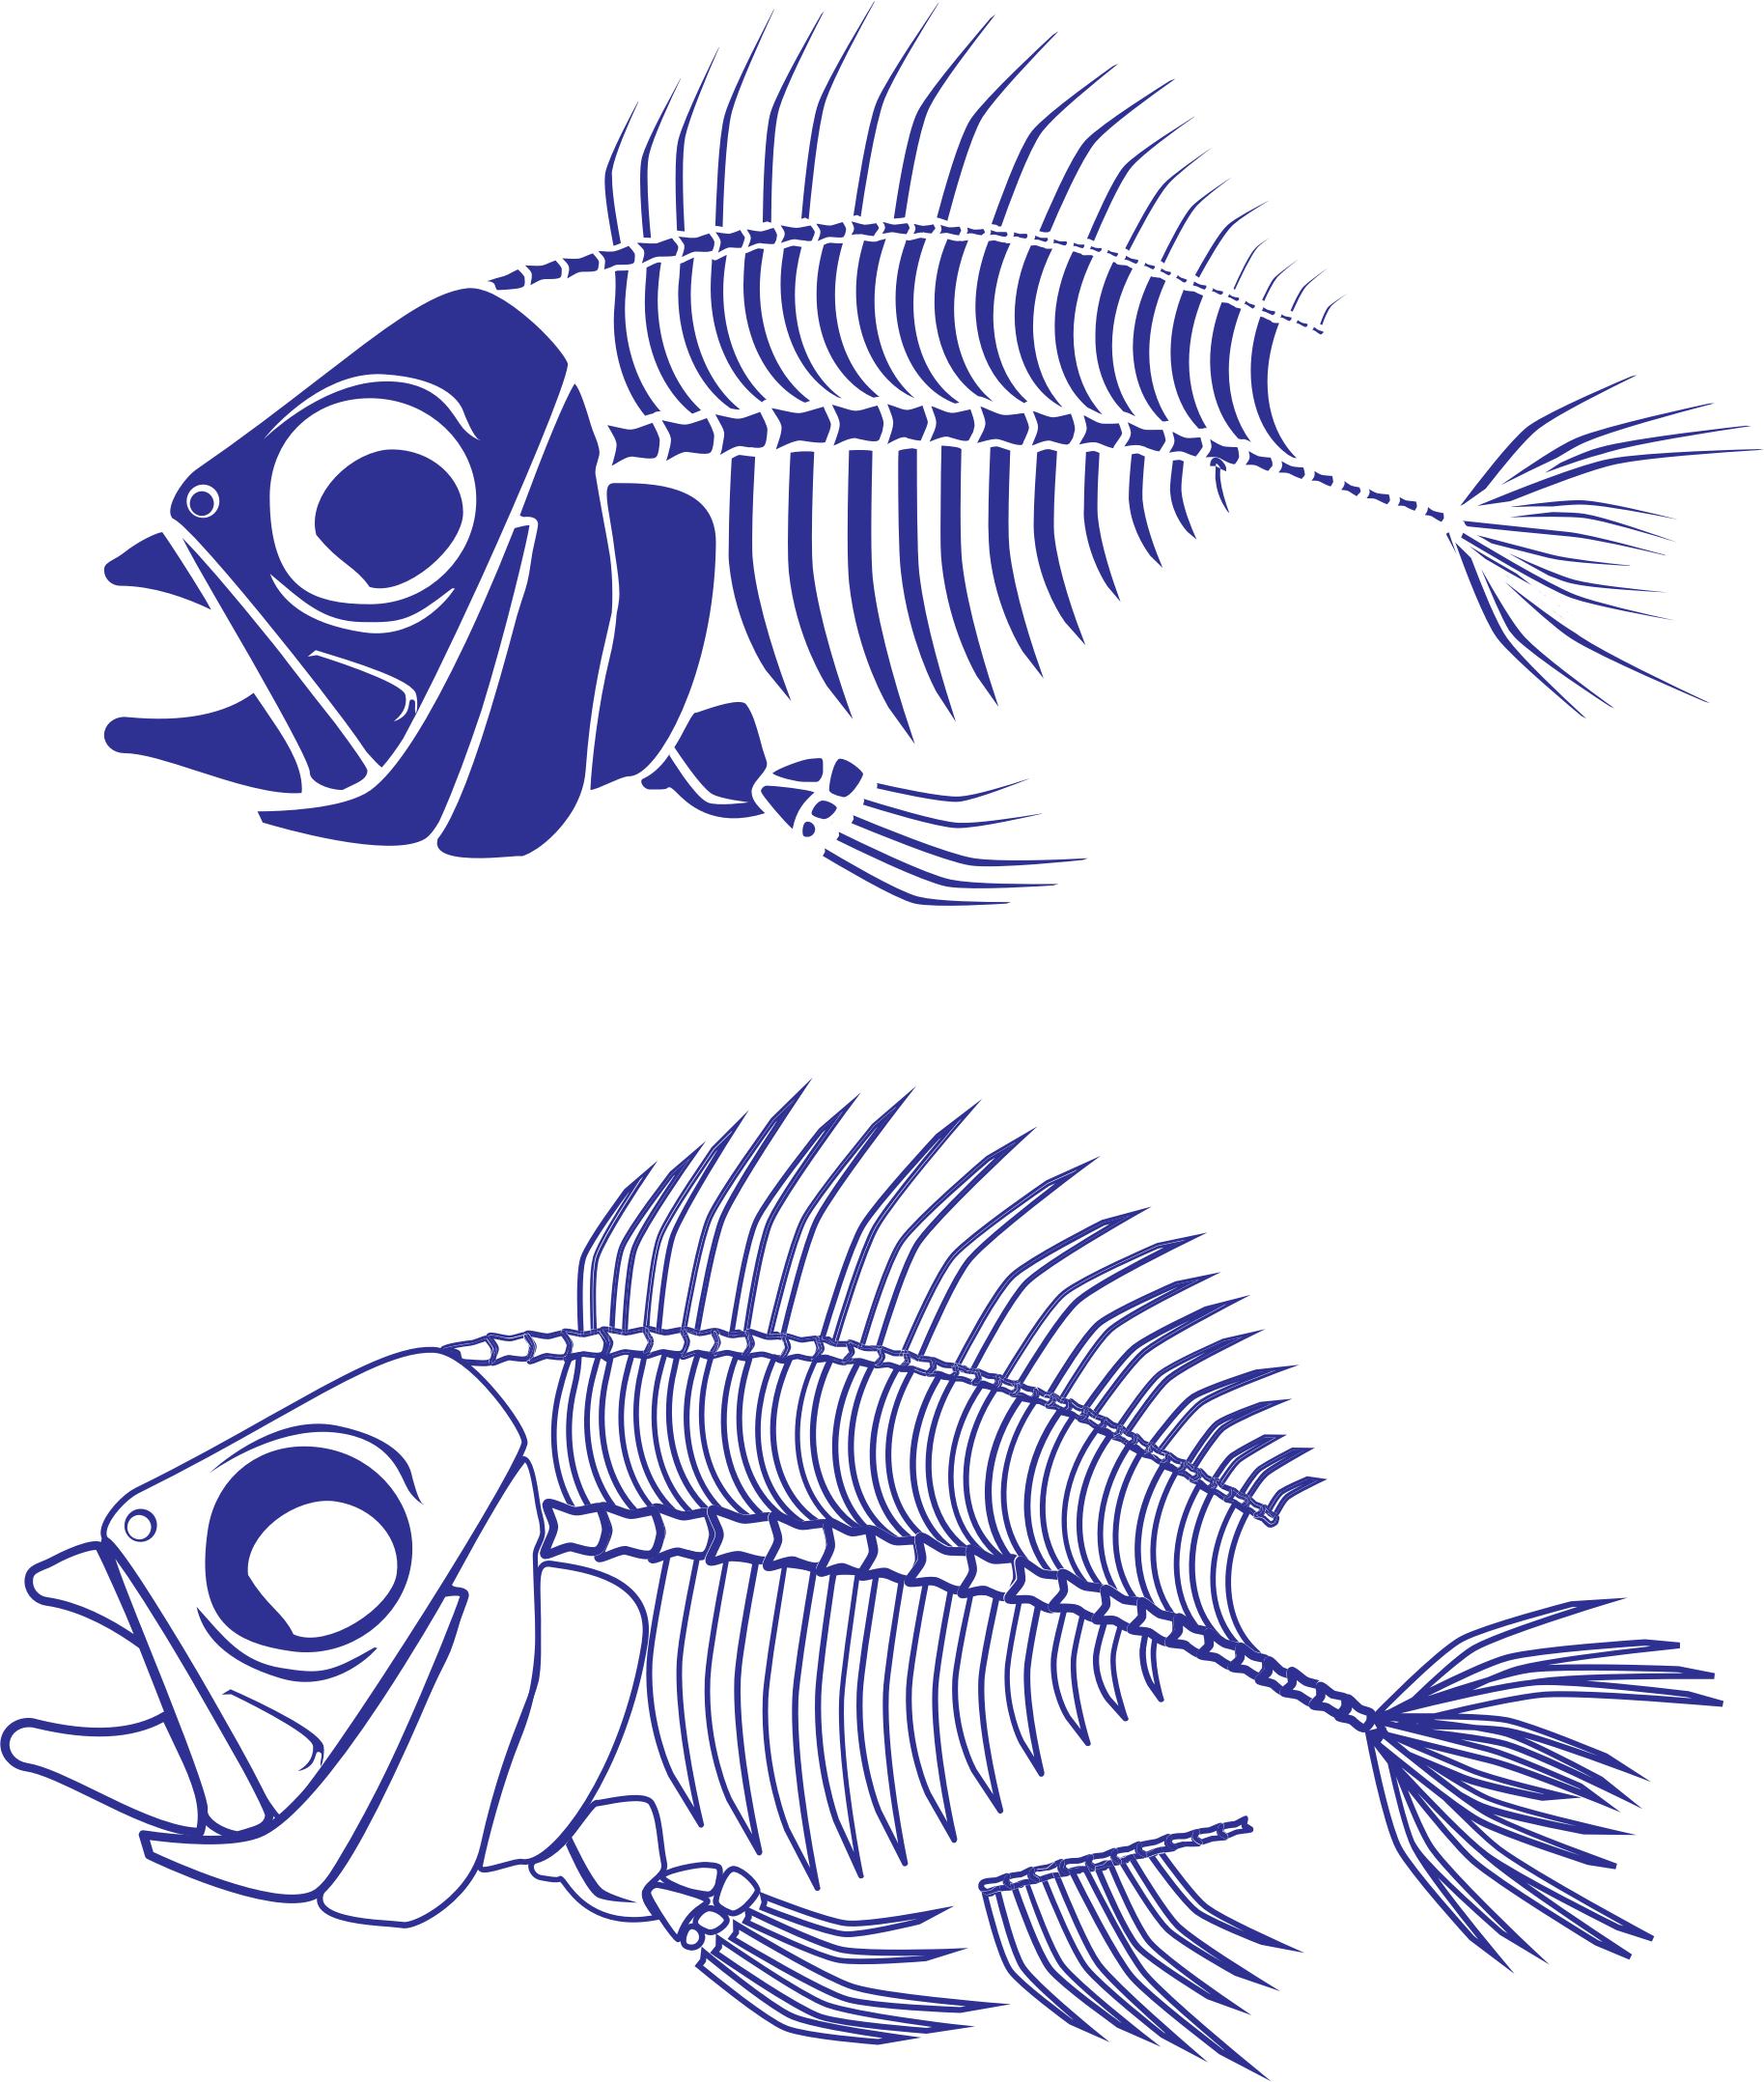 Fish Skeleton by ChromaRush